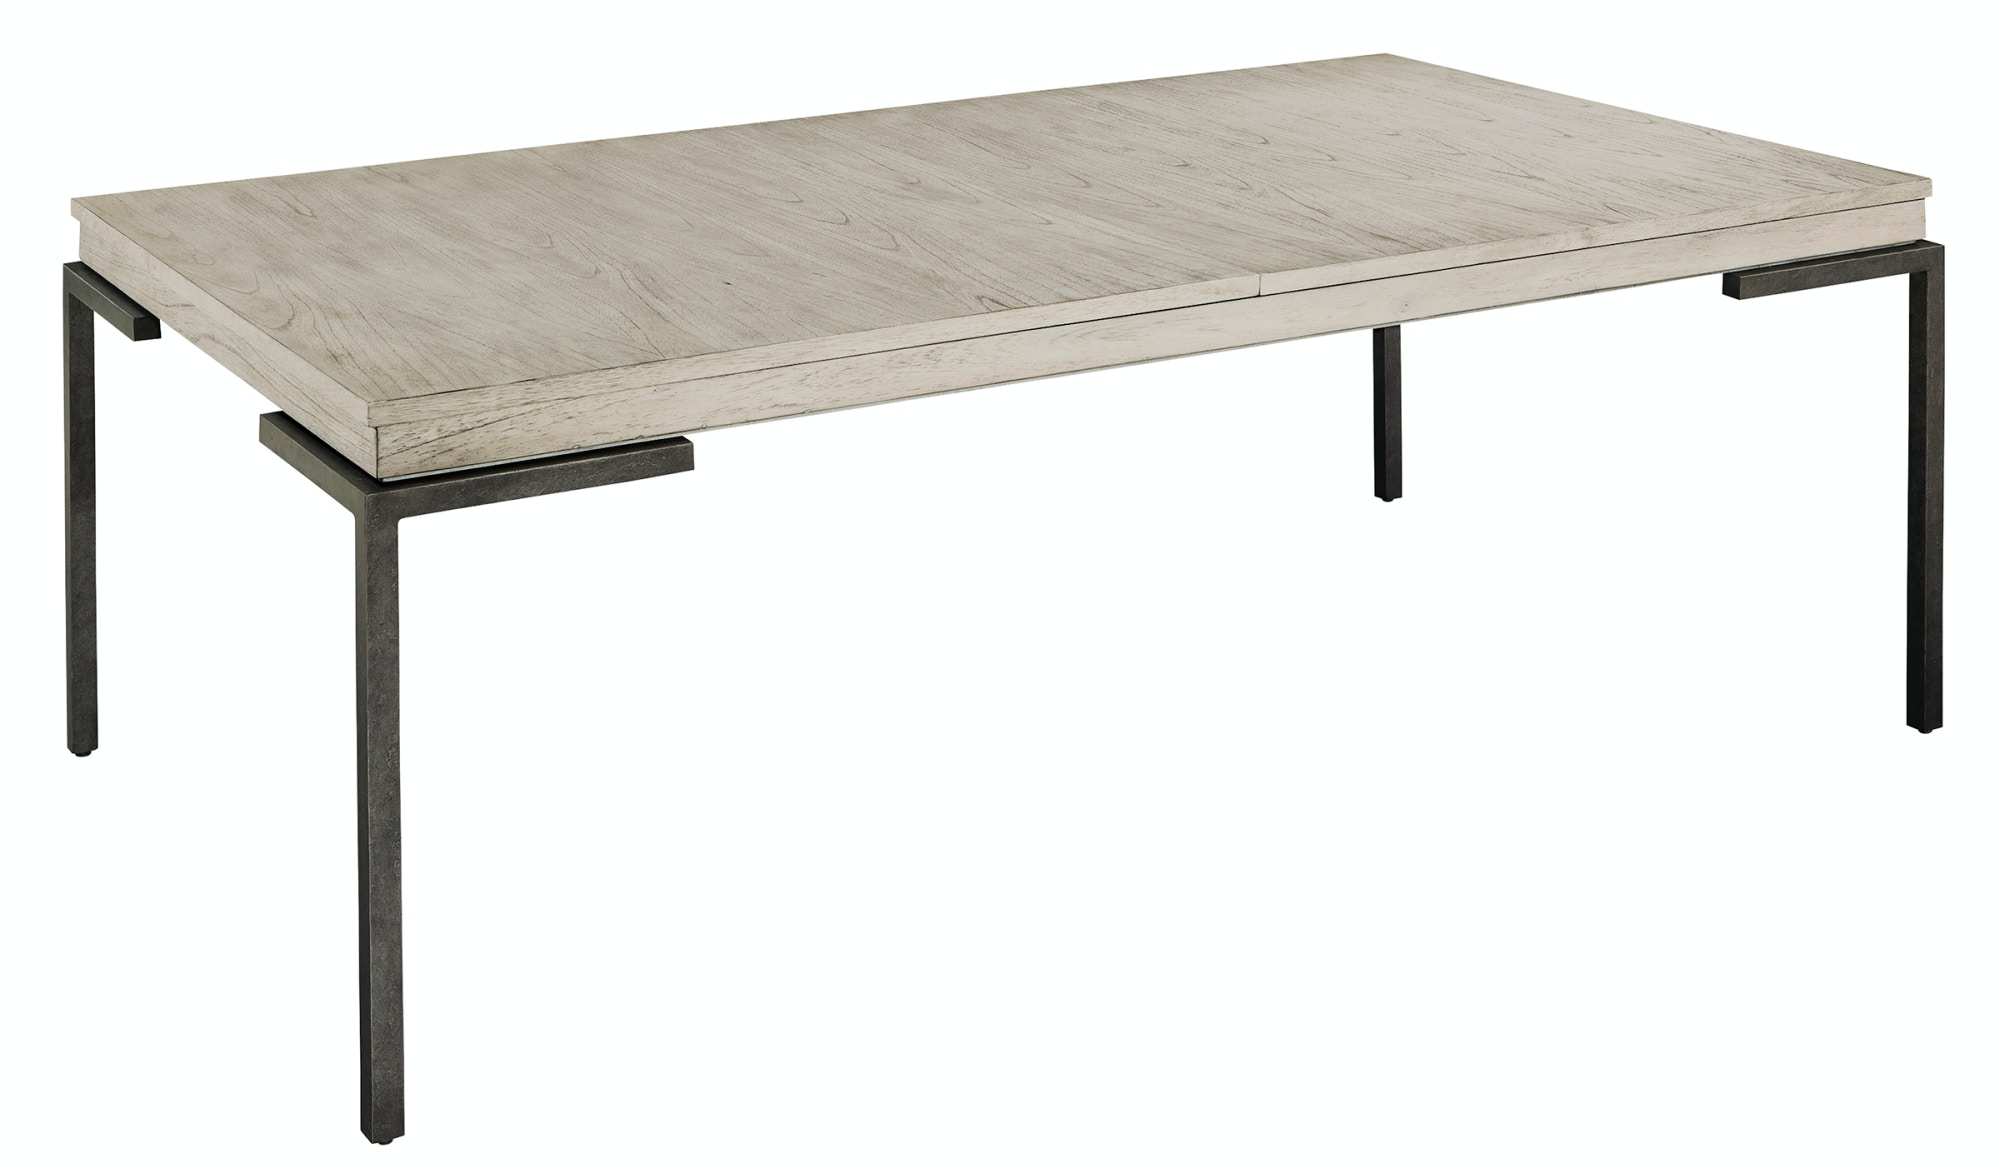 Hekman Furniture Sierra Heights Occasional Rec Dining Table 2 4120 Hekman